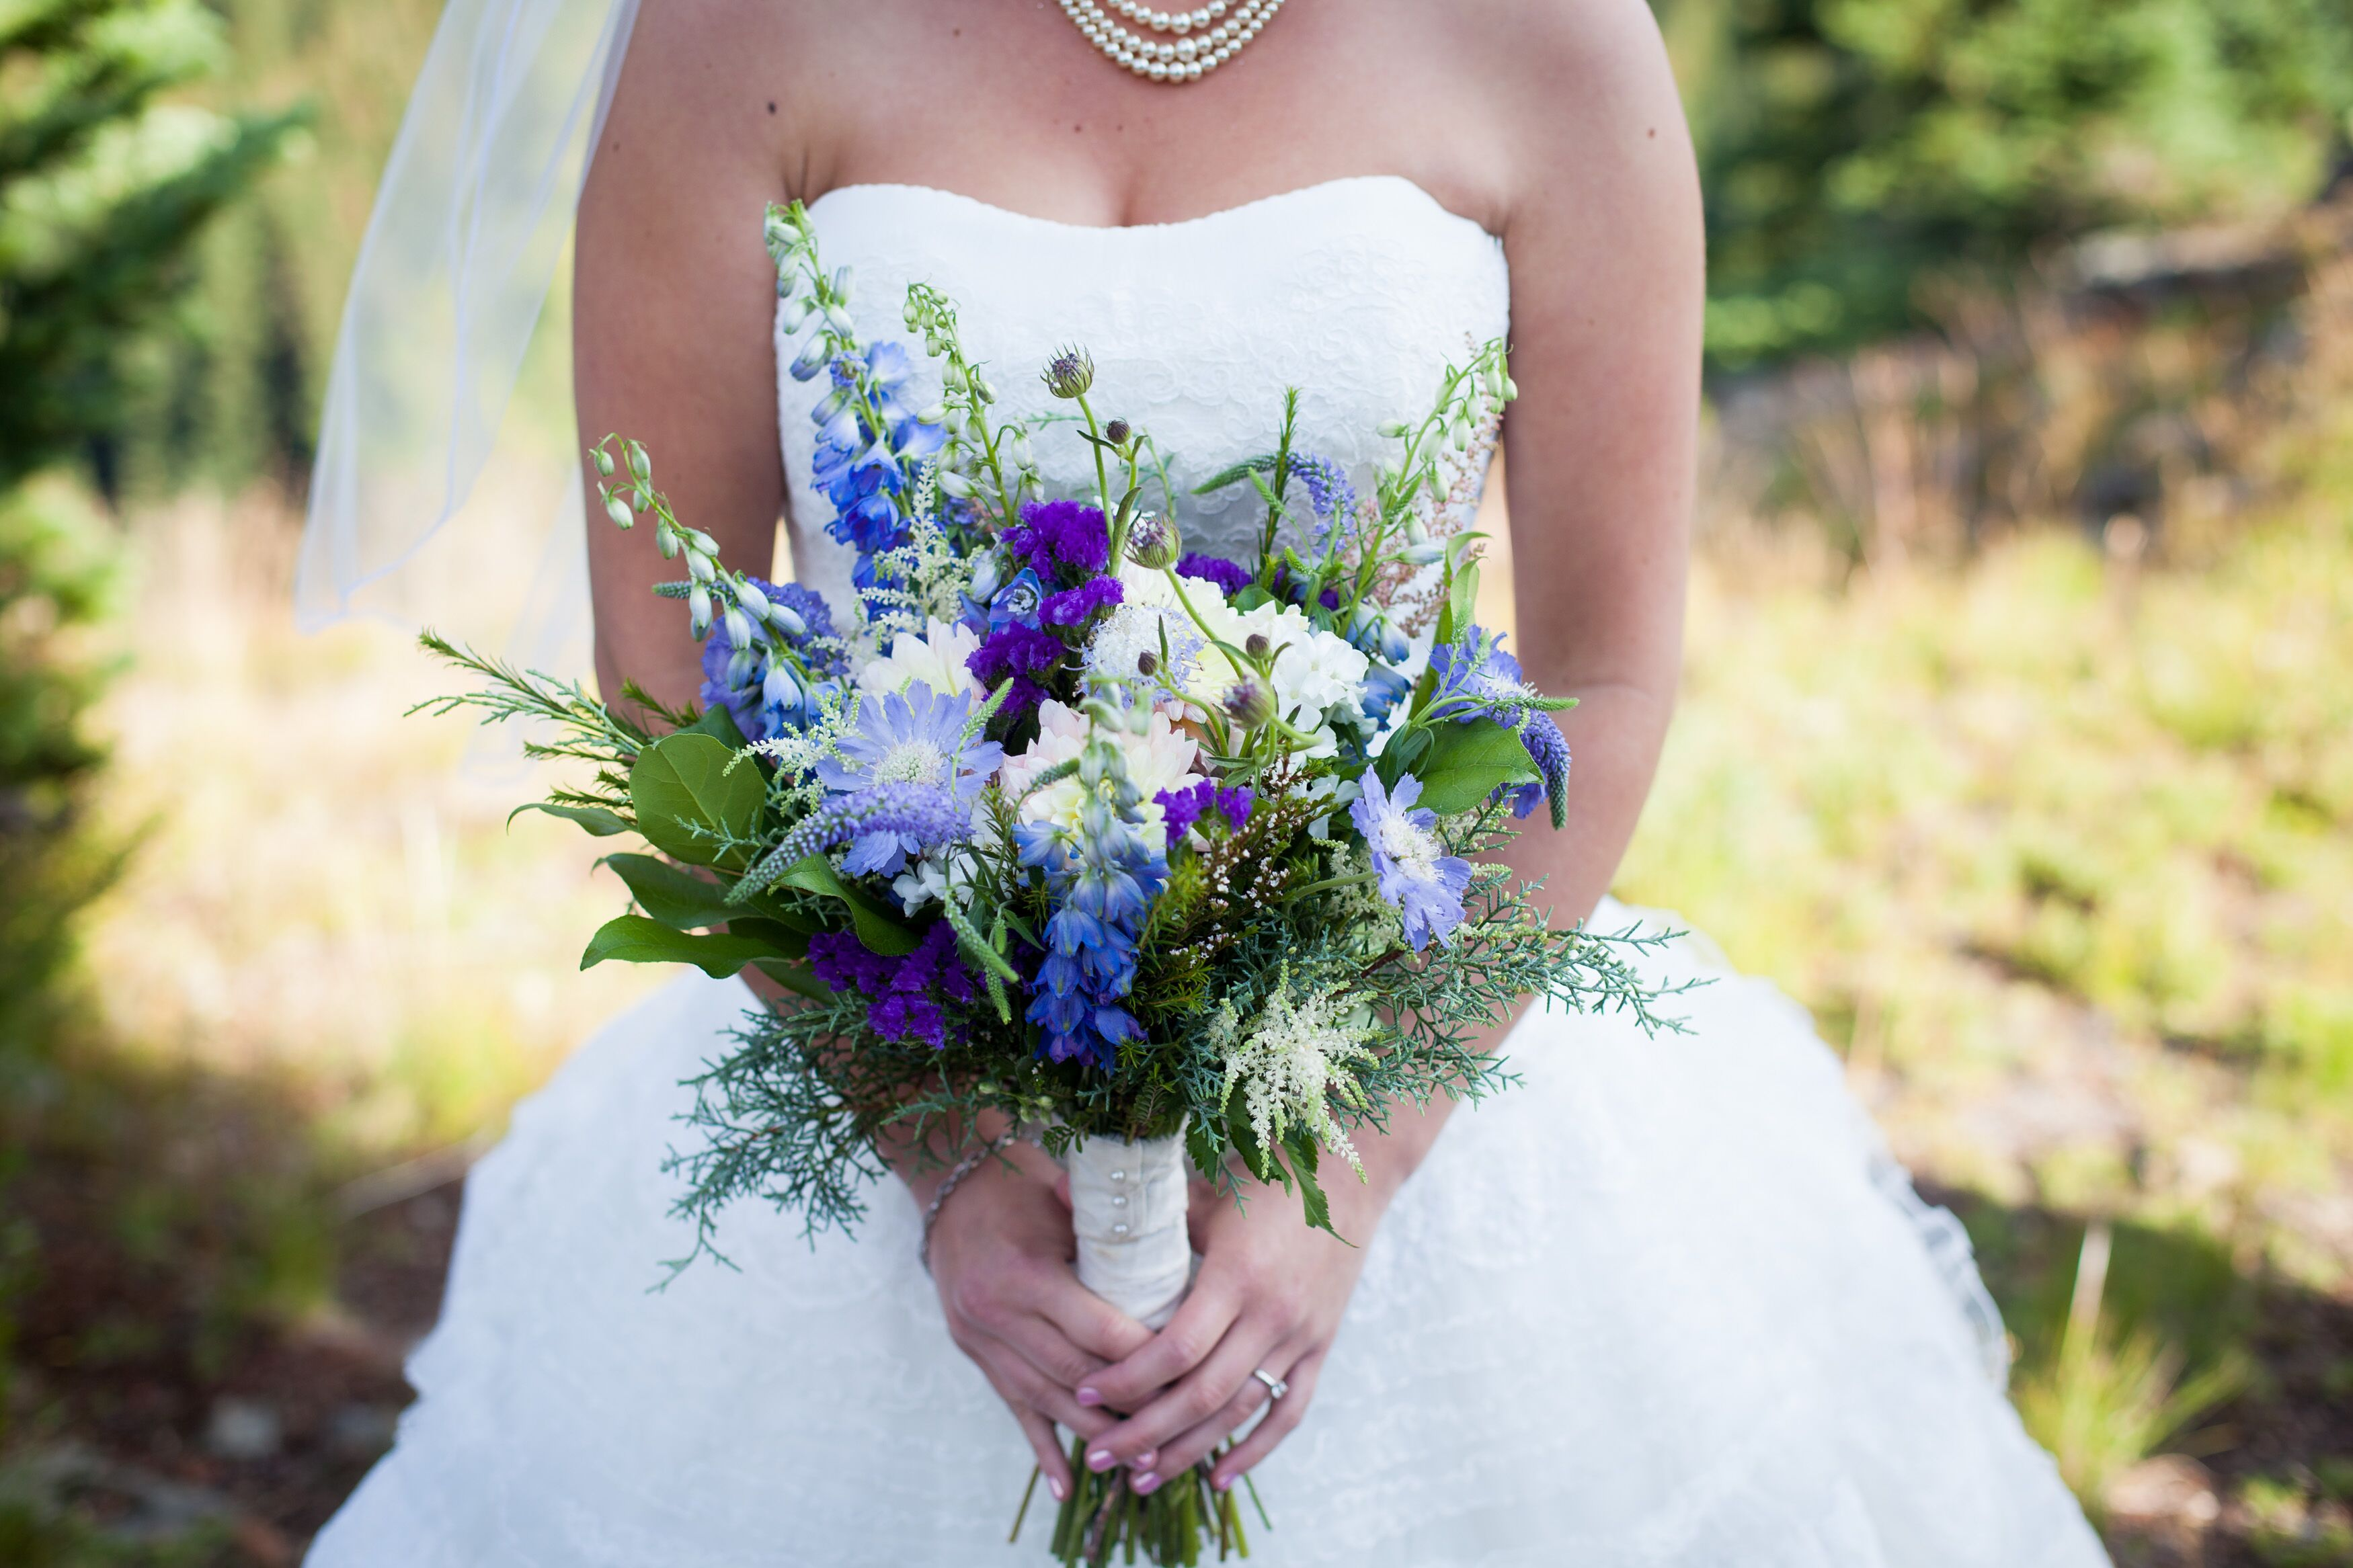 19 bridal bouquet types which wedding bouquet style is - 1024×683